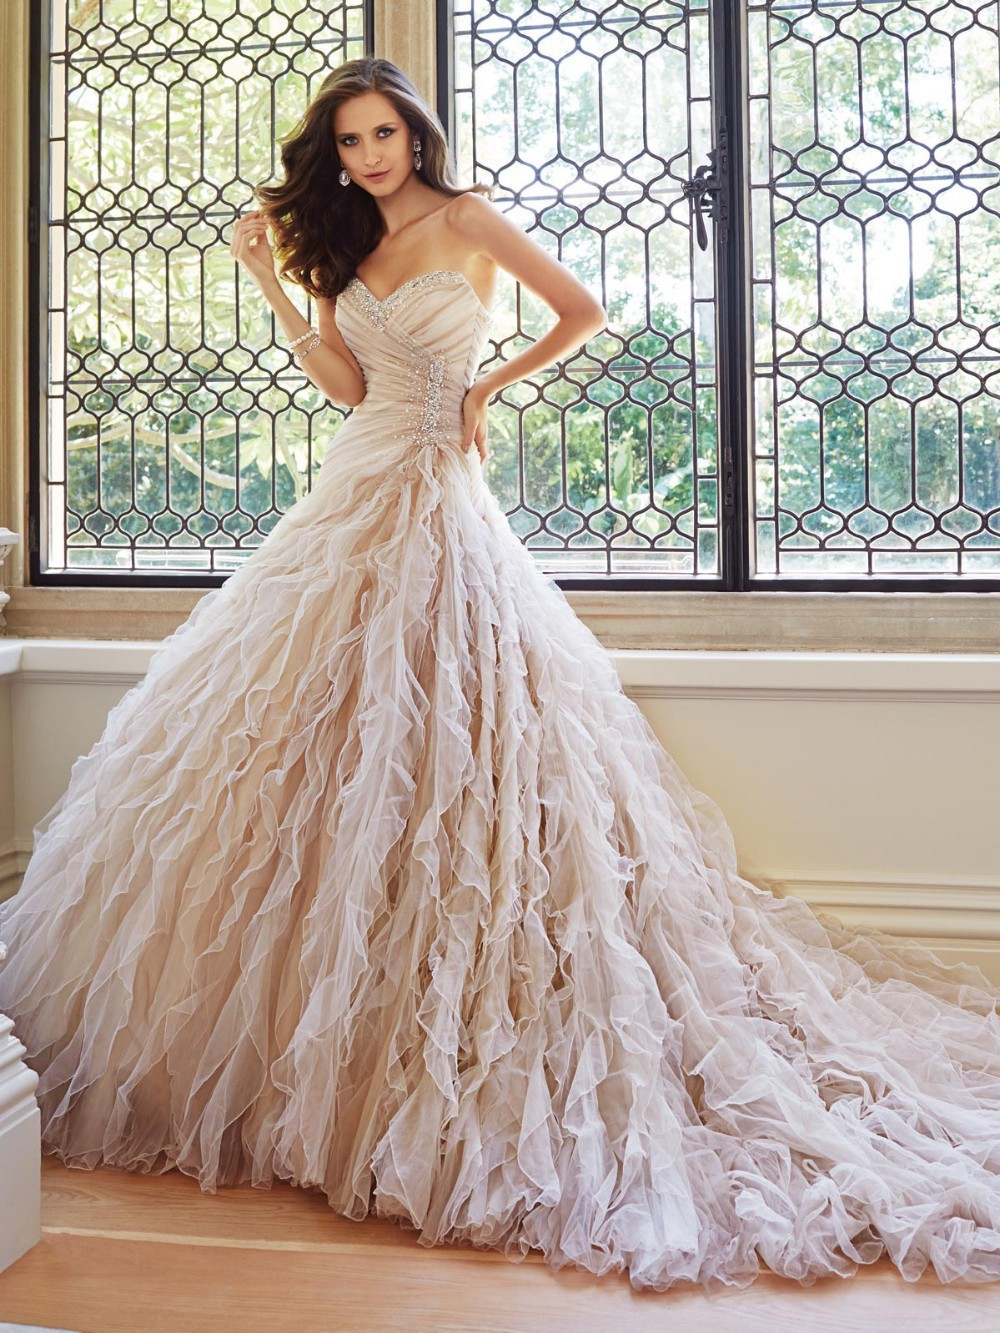 Elegant Crystal Strapless Sweetheart and frothy Layers of Misty Tulle Chapel Length Train Ball Gown wedding Dresses 2016 in Wedding Dresses from Weddings Events